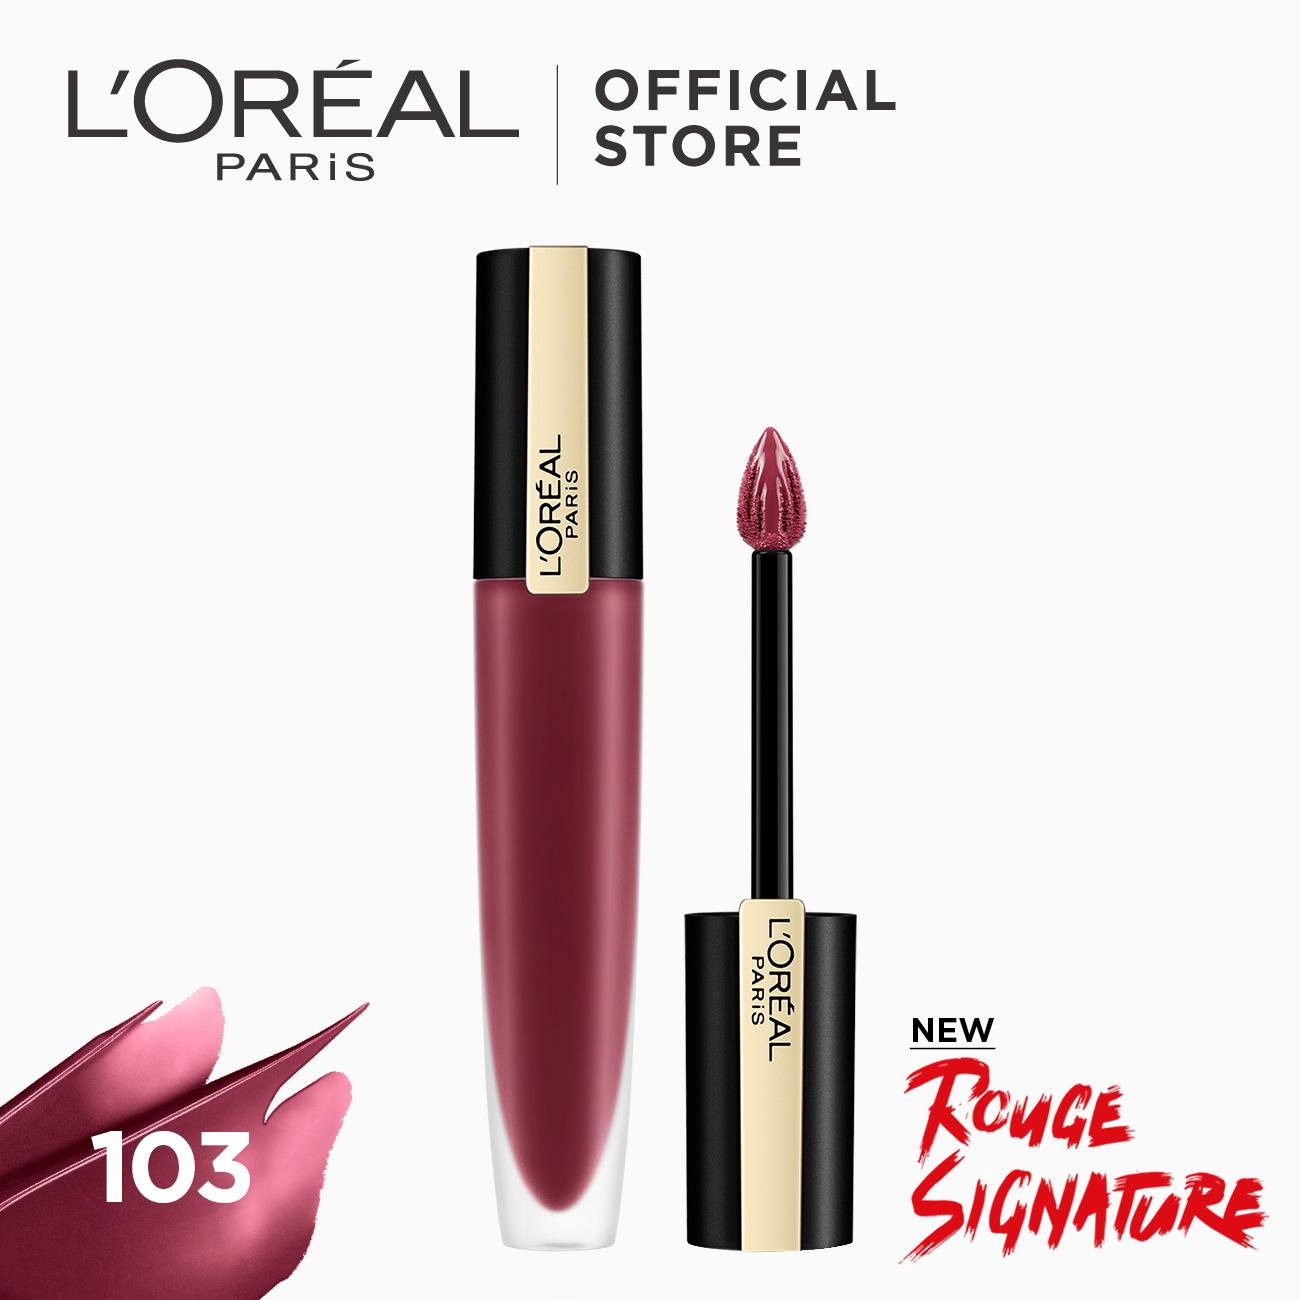 LOreal Paris Rouge Signature by LOreal Paris Philippines